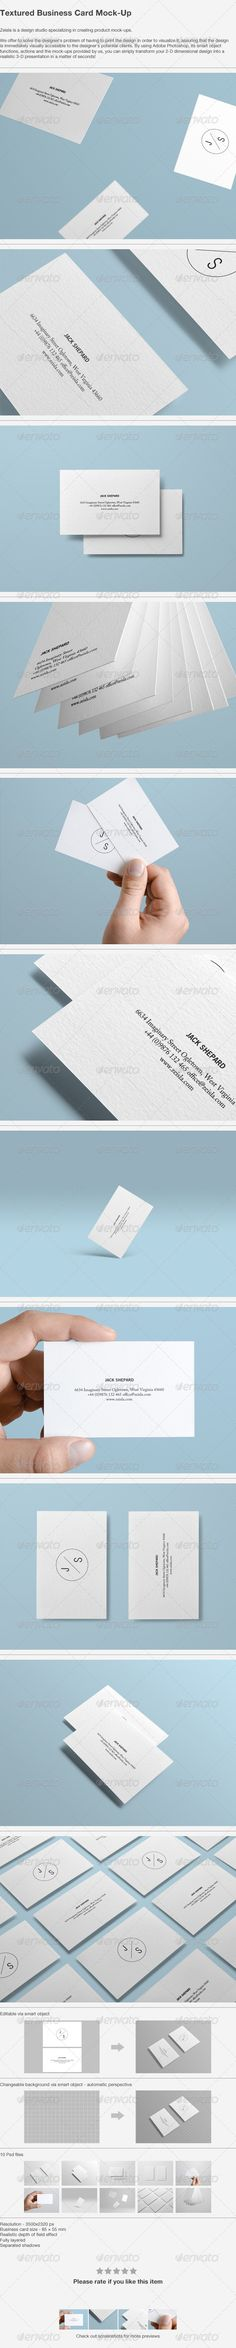 Realistic business card mock up busienss cards pinterest realistic business card mock up busienss cards pinterest business cards reheart Images